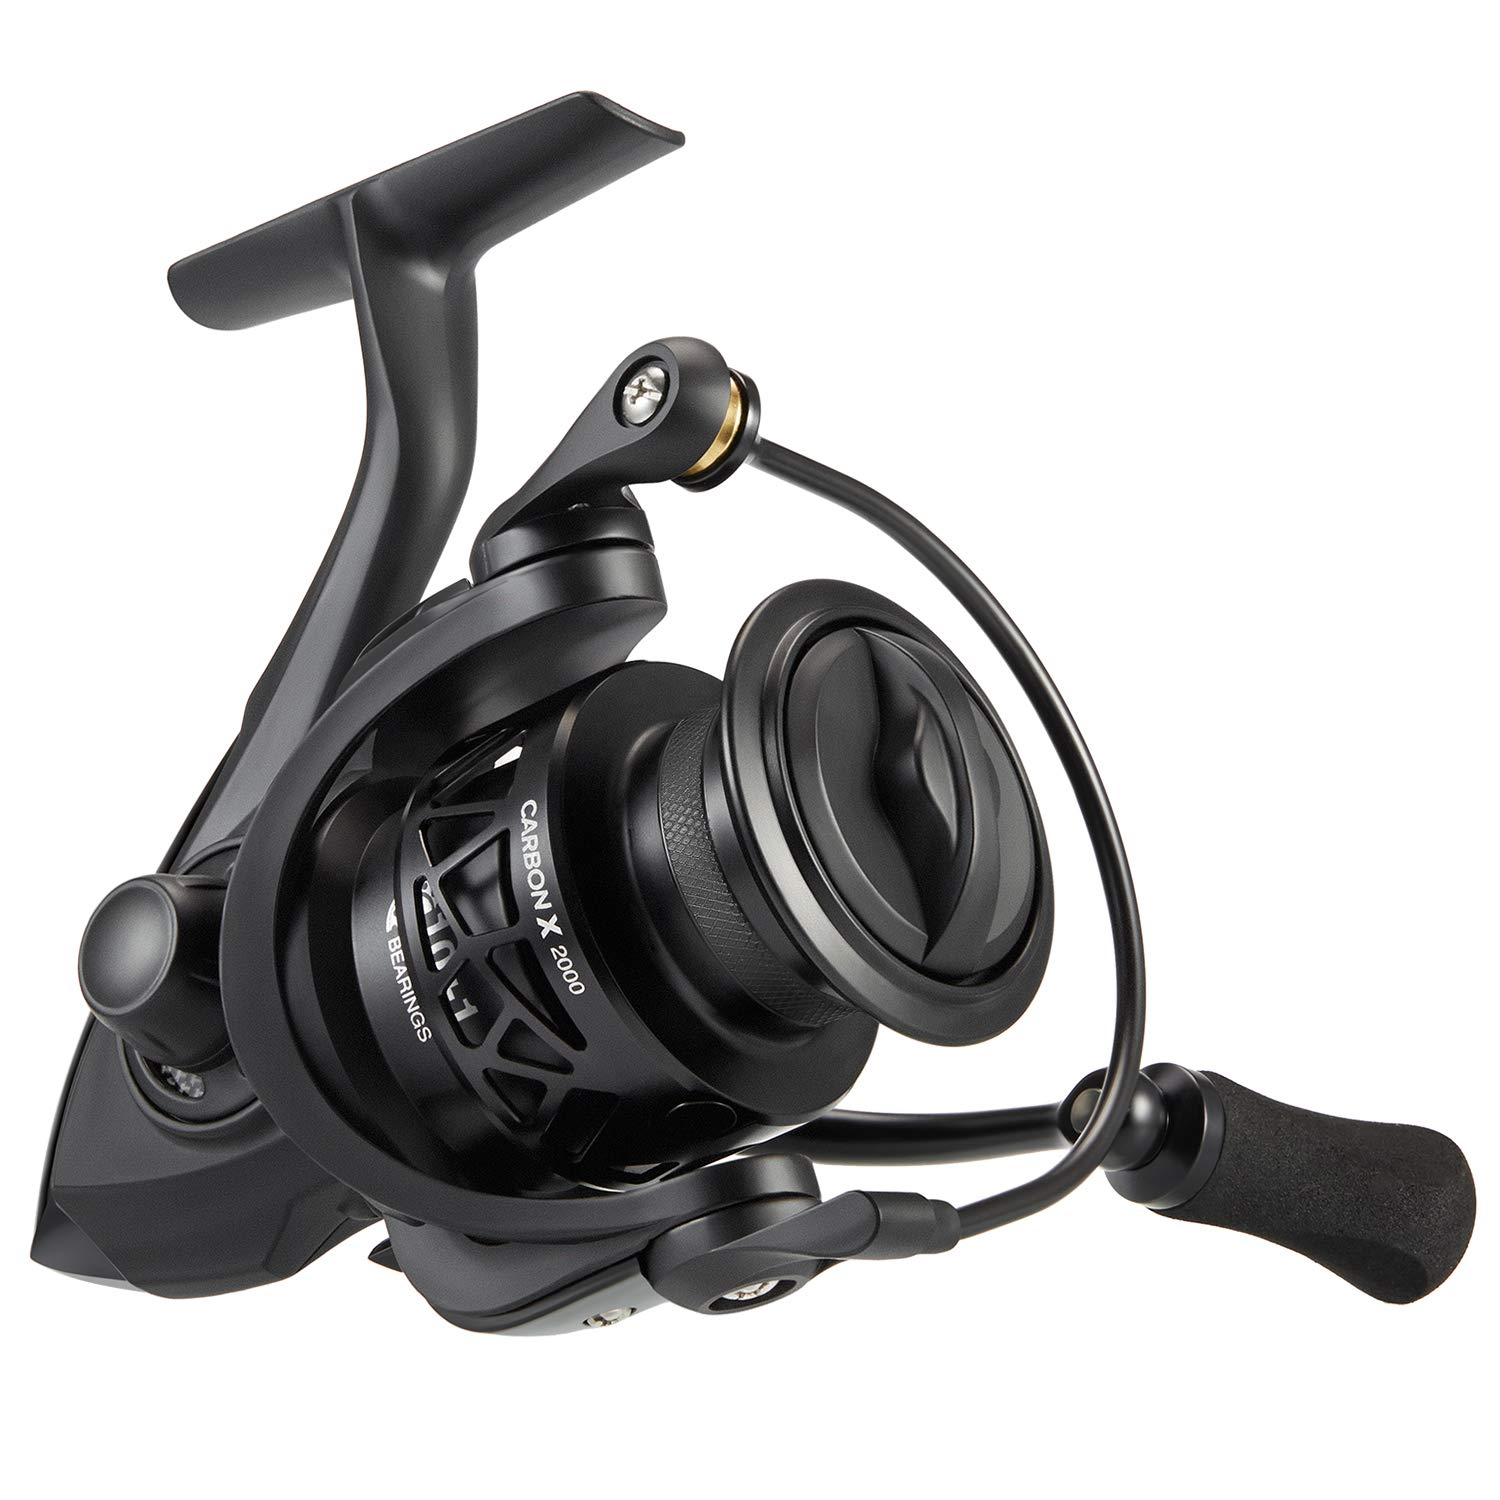 Piscifun Carbon X Spinning Reels - Light to 5.7oz, 5.2:1-6.2:1 High Speed Gear Ratio, Carbon Frame and Rotor, 10+1 Shielded BB, Smooth Powerful Freshwater